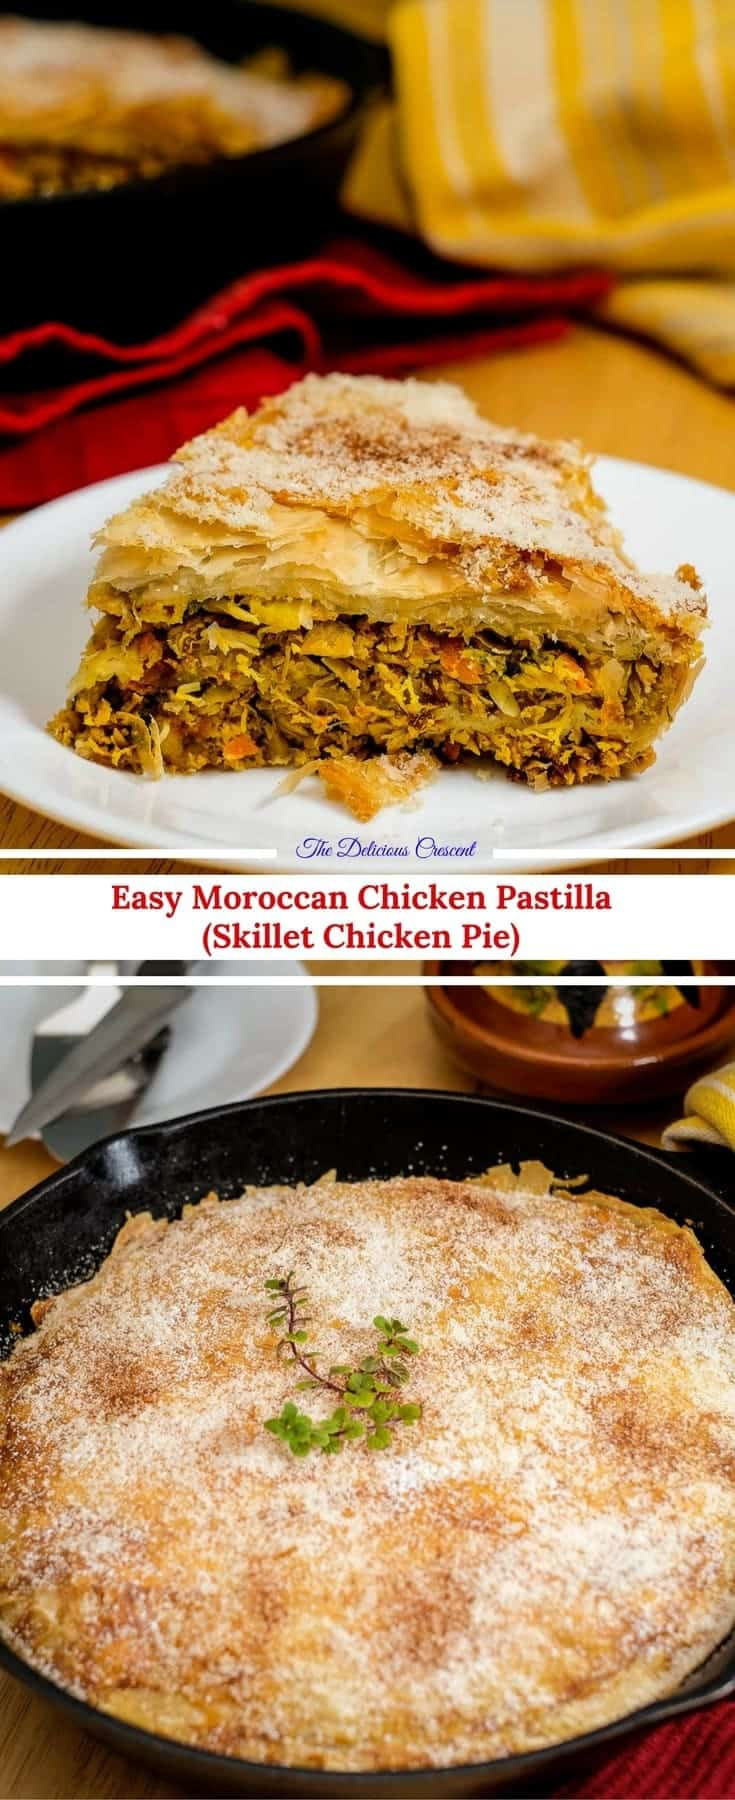 Chicken Pastilla, a scrumptious protein rich Moroccan delicacy, made easy in a skillet. Tender shredded chicken with aromatic spices wrapped in perfectly crisp pastry layers.